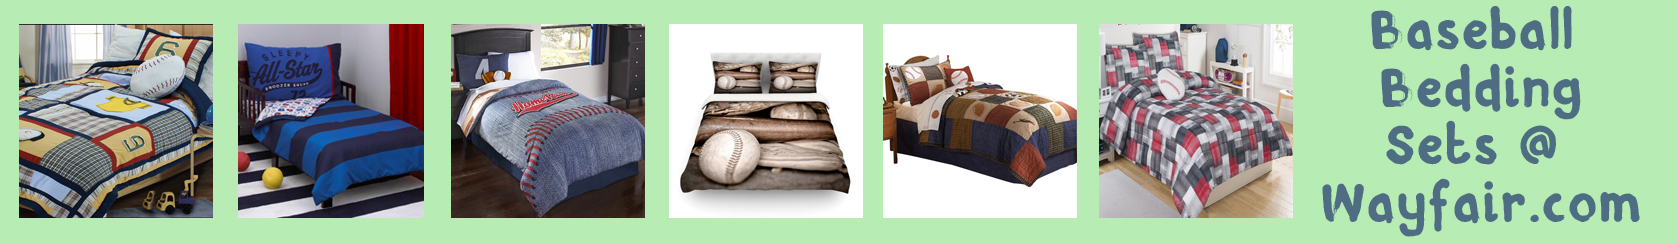 wayfair baseball bedding banner thin bright light green